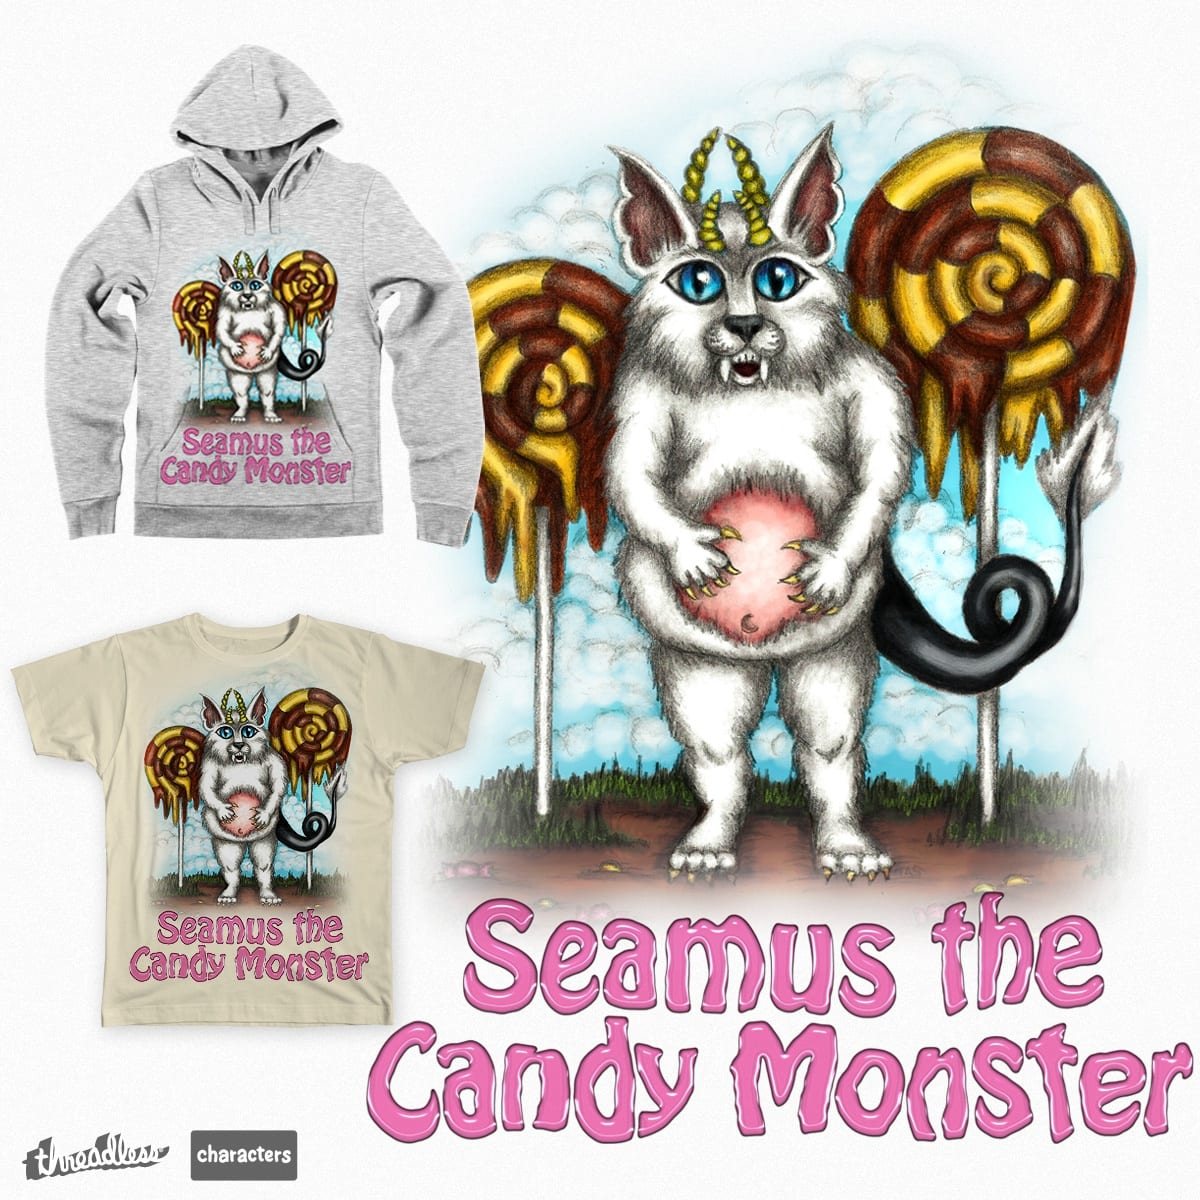 Seamus the Candy Monster by tasillustration on Threadless